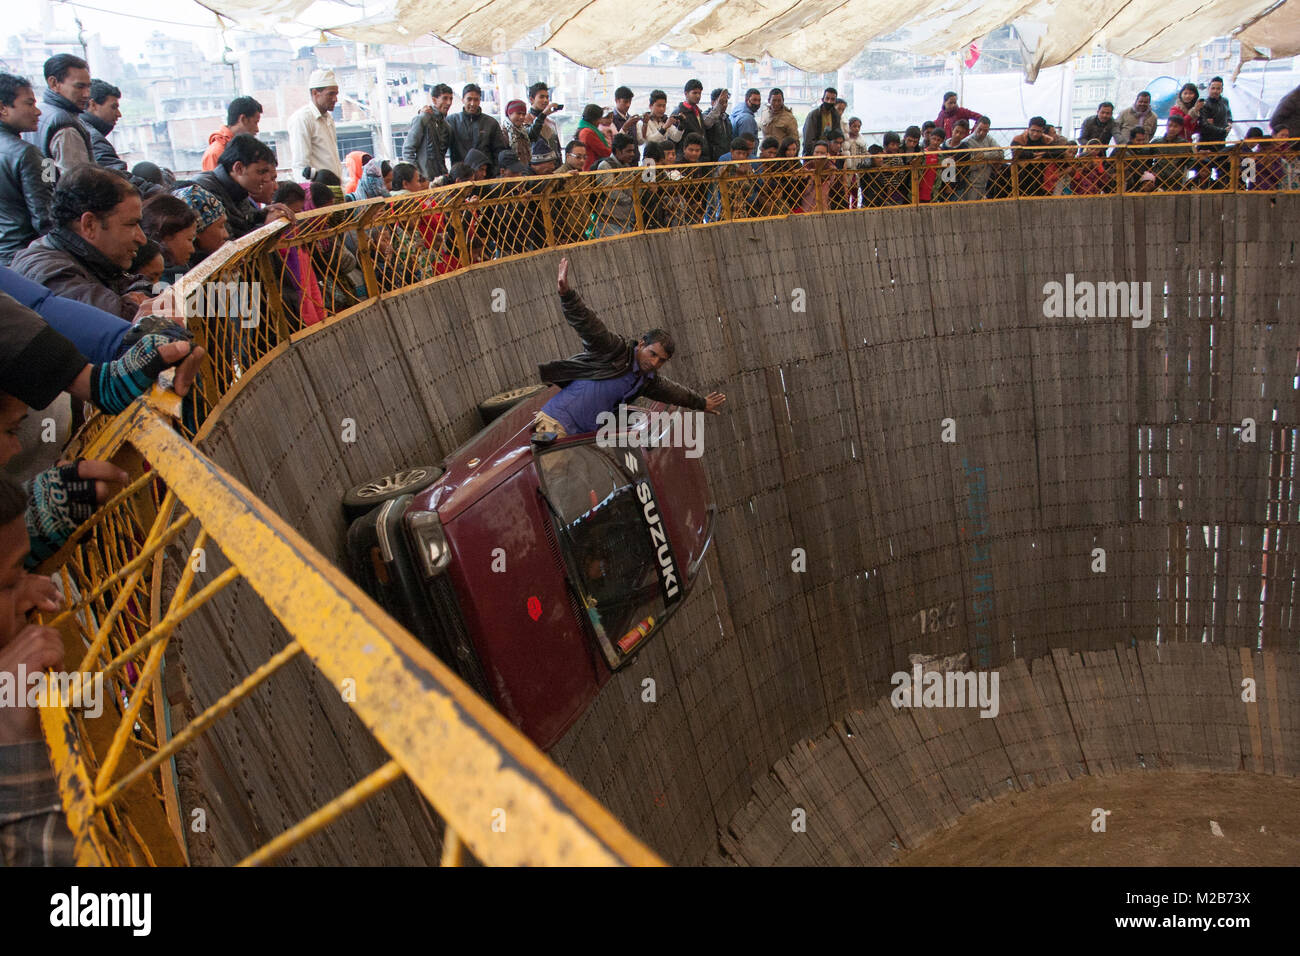 A man performs car stunt in a circus called death of bowl in Nepal. - Stock Image